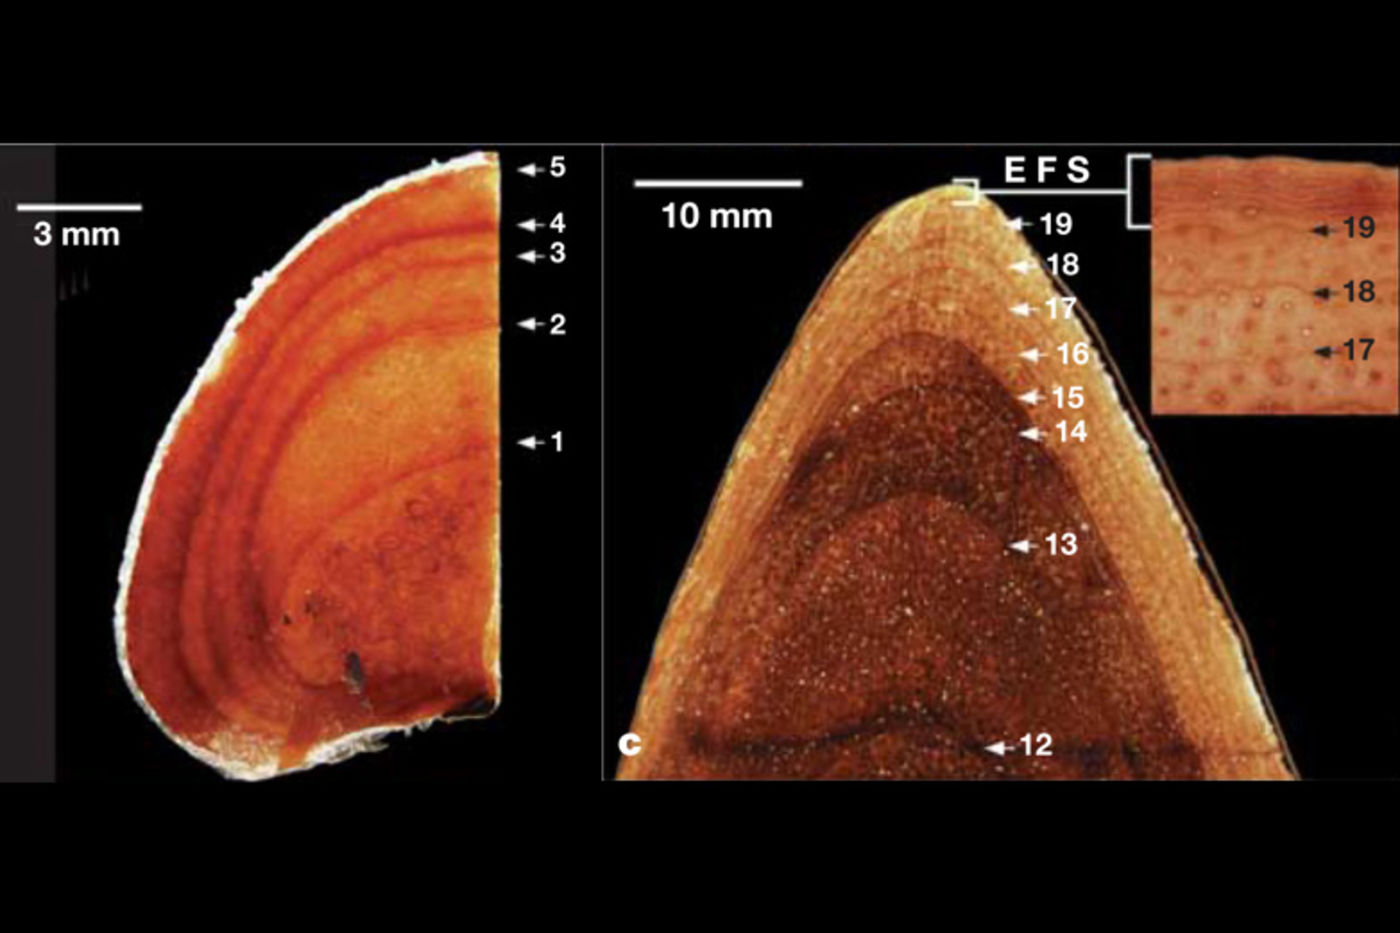 Two side-by-side orange scans showing rings inside dinosaur bones. The scan on the left counts up to 5, and the scan on the right counts up to 19 rings.